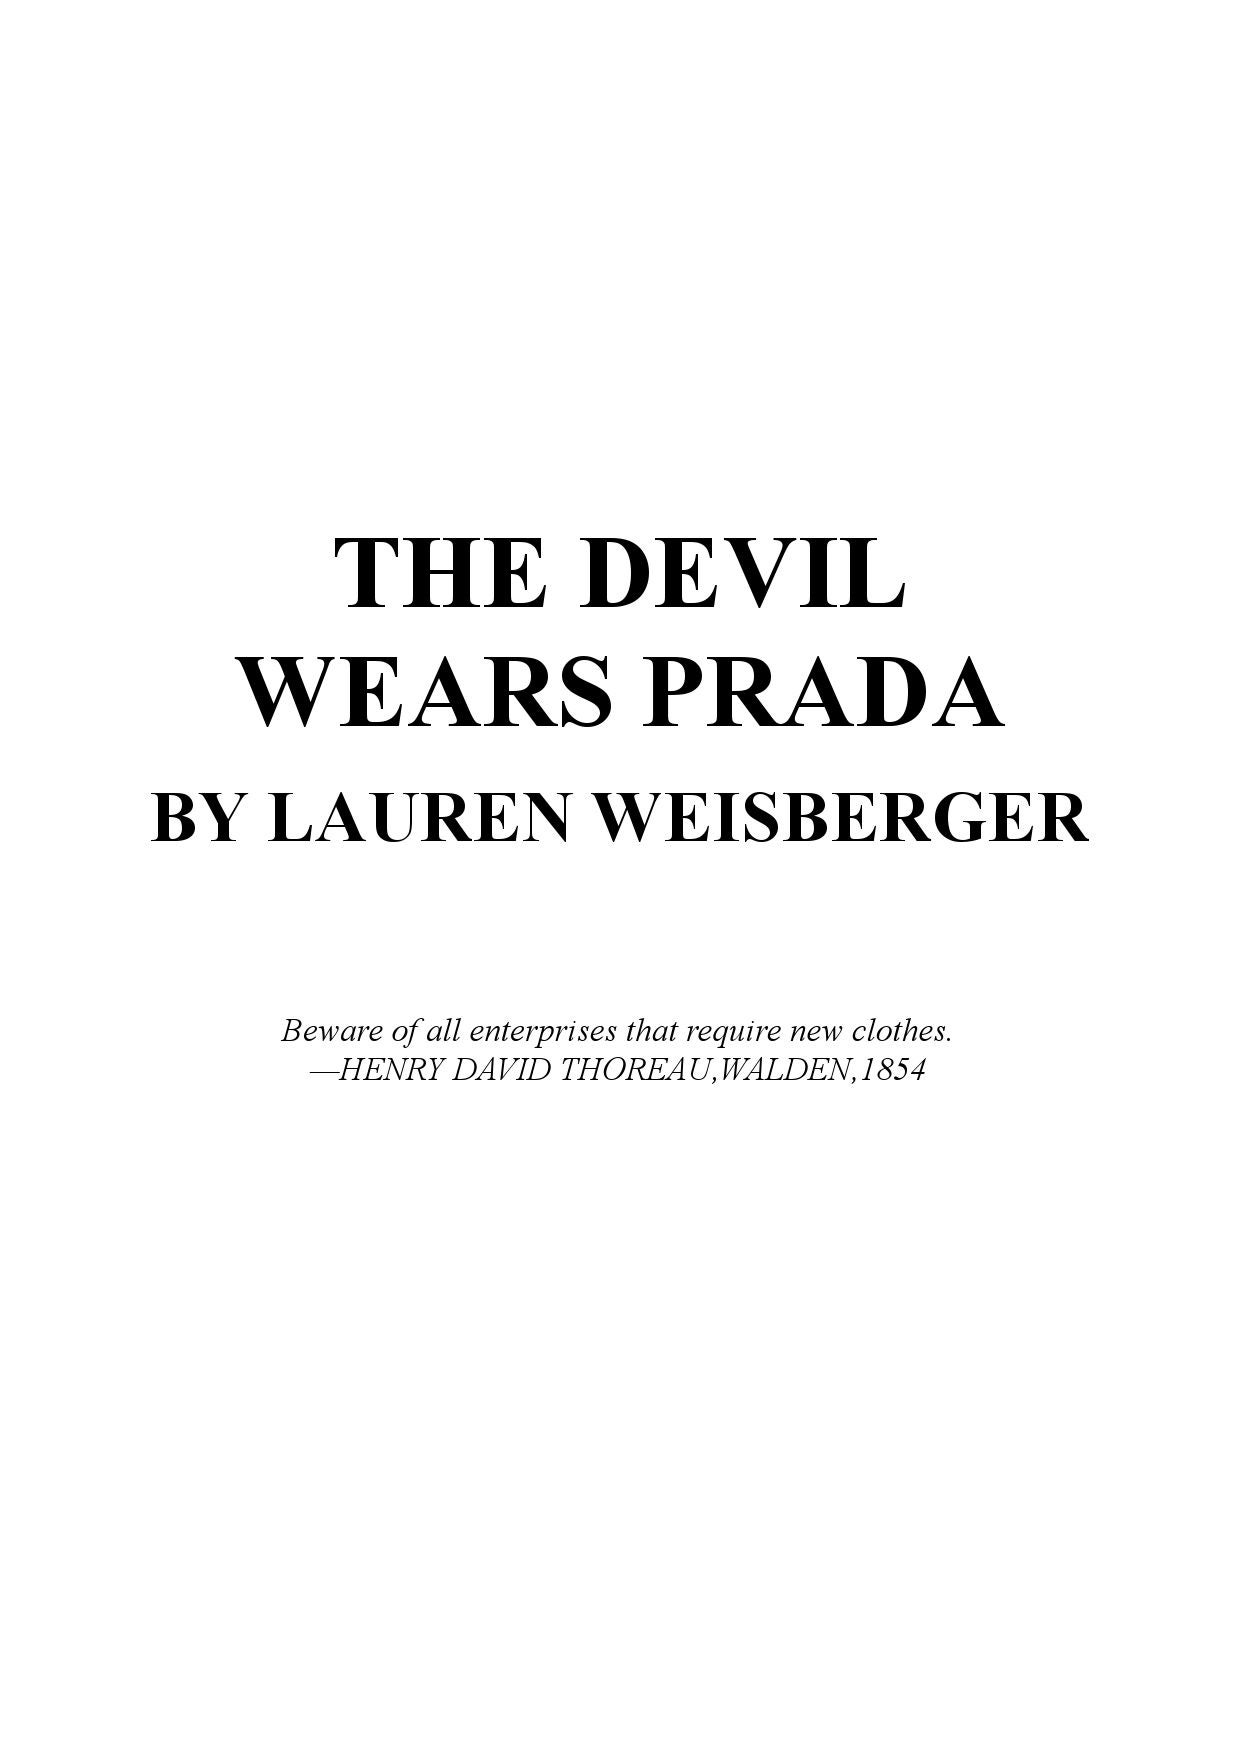 691c2cf0755847 The Devil Wears Prada By Lauren Weisberger by Elizabeth curtis - issuu